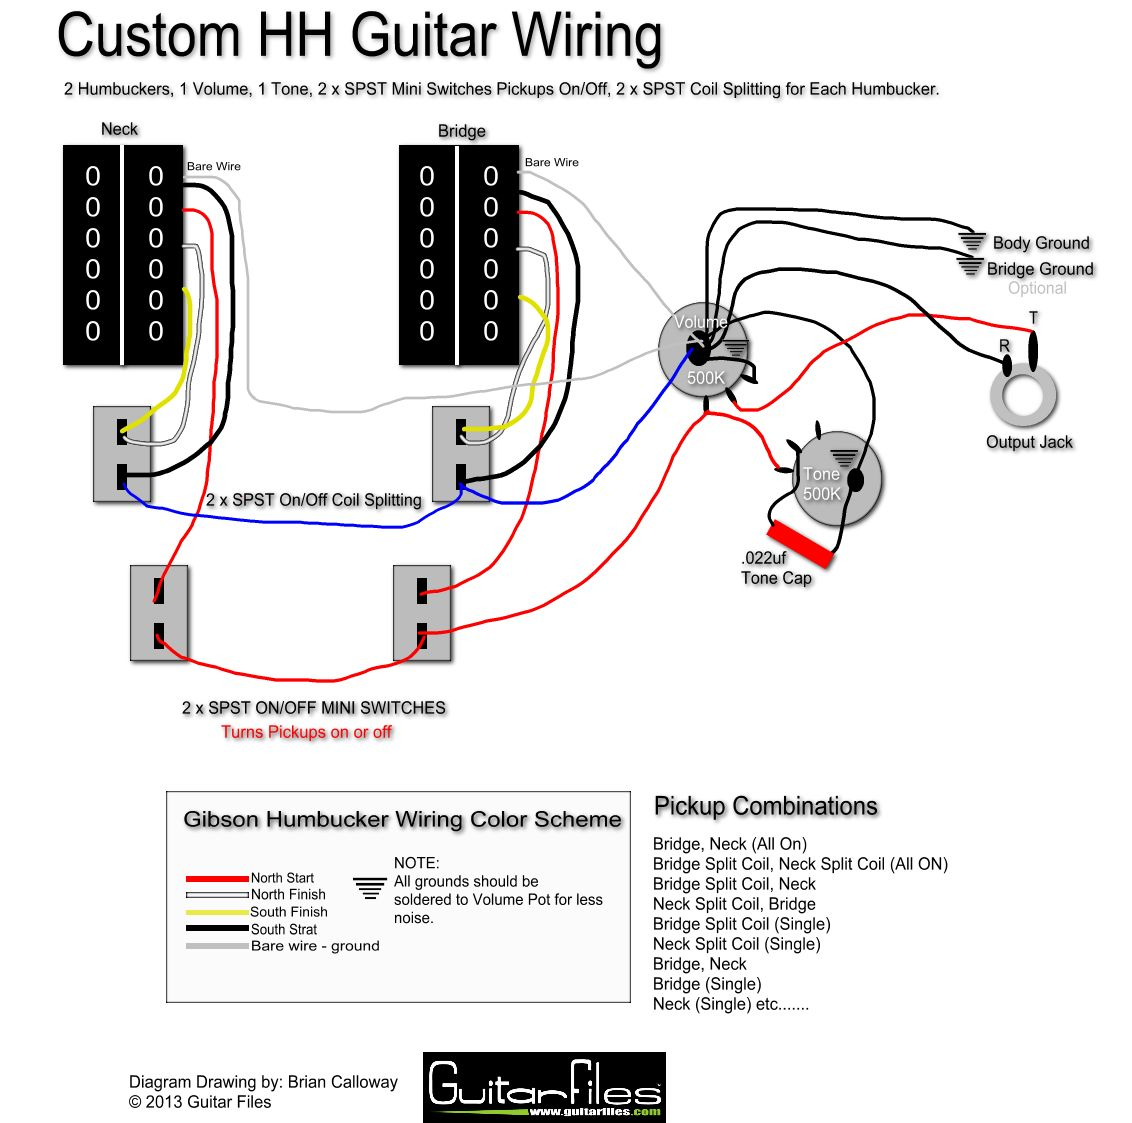 Custom HH Wiring Diagram With SPST Coil Splitting and SPST ...